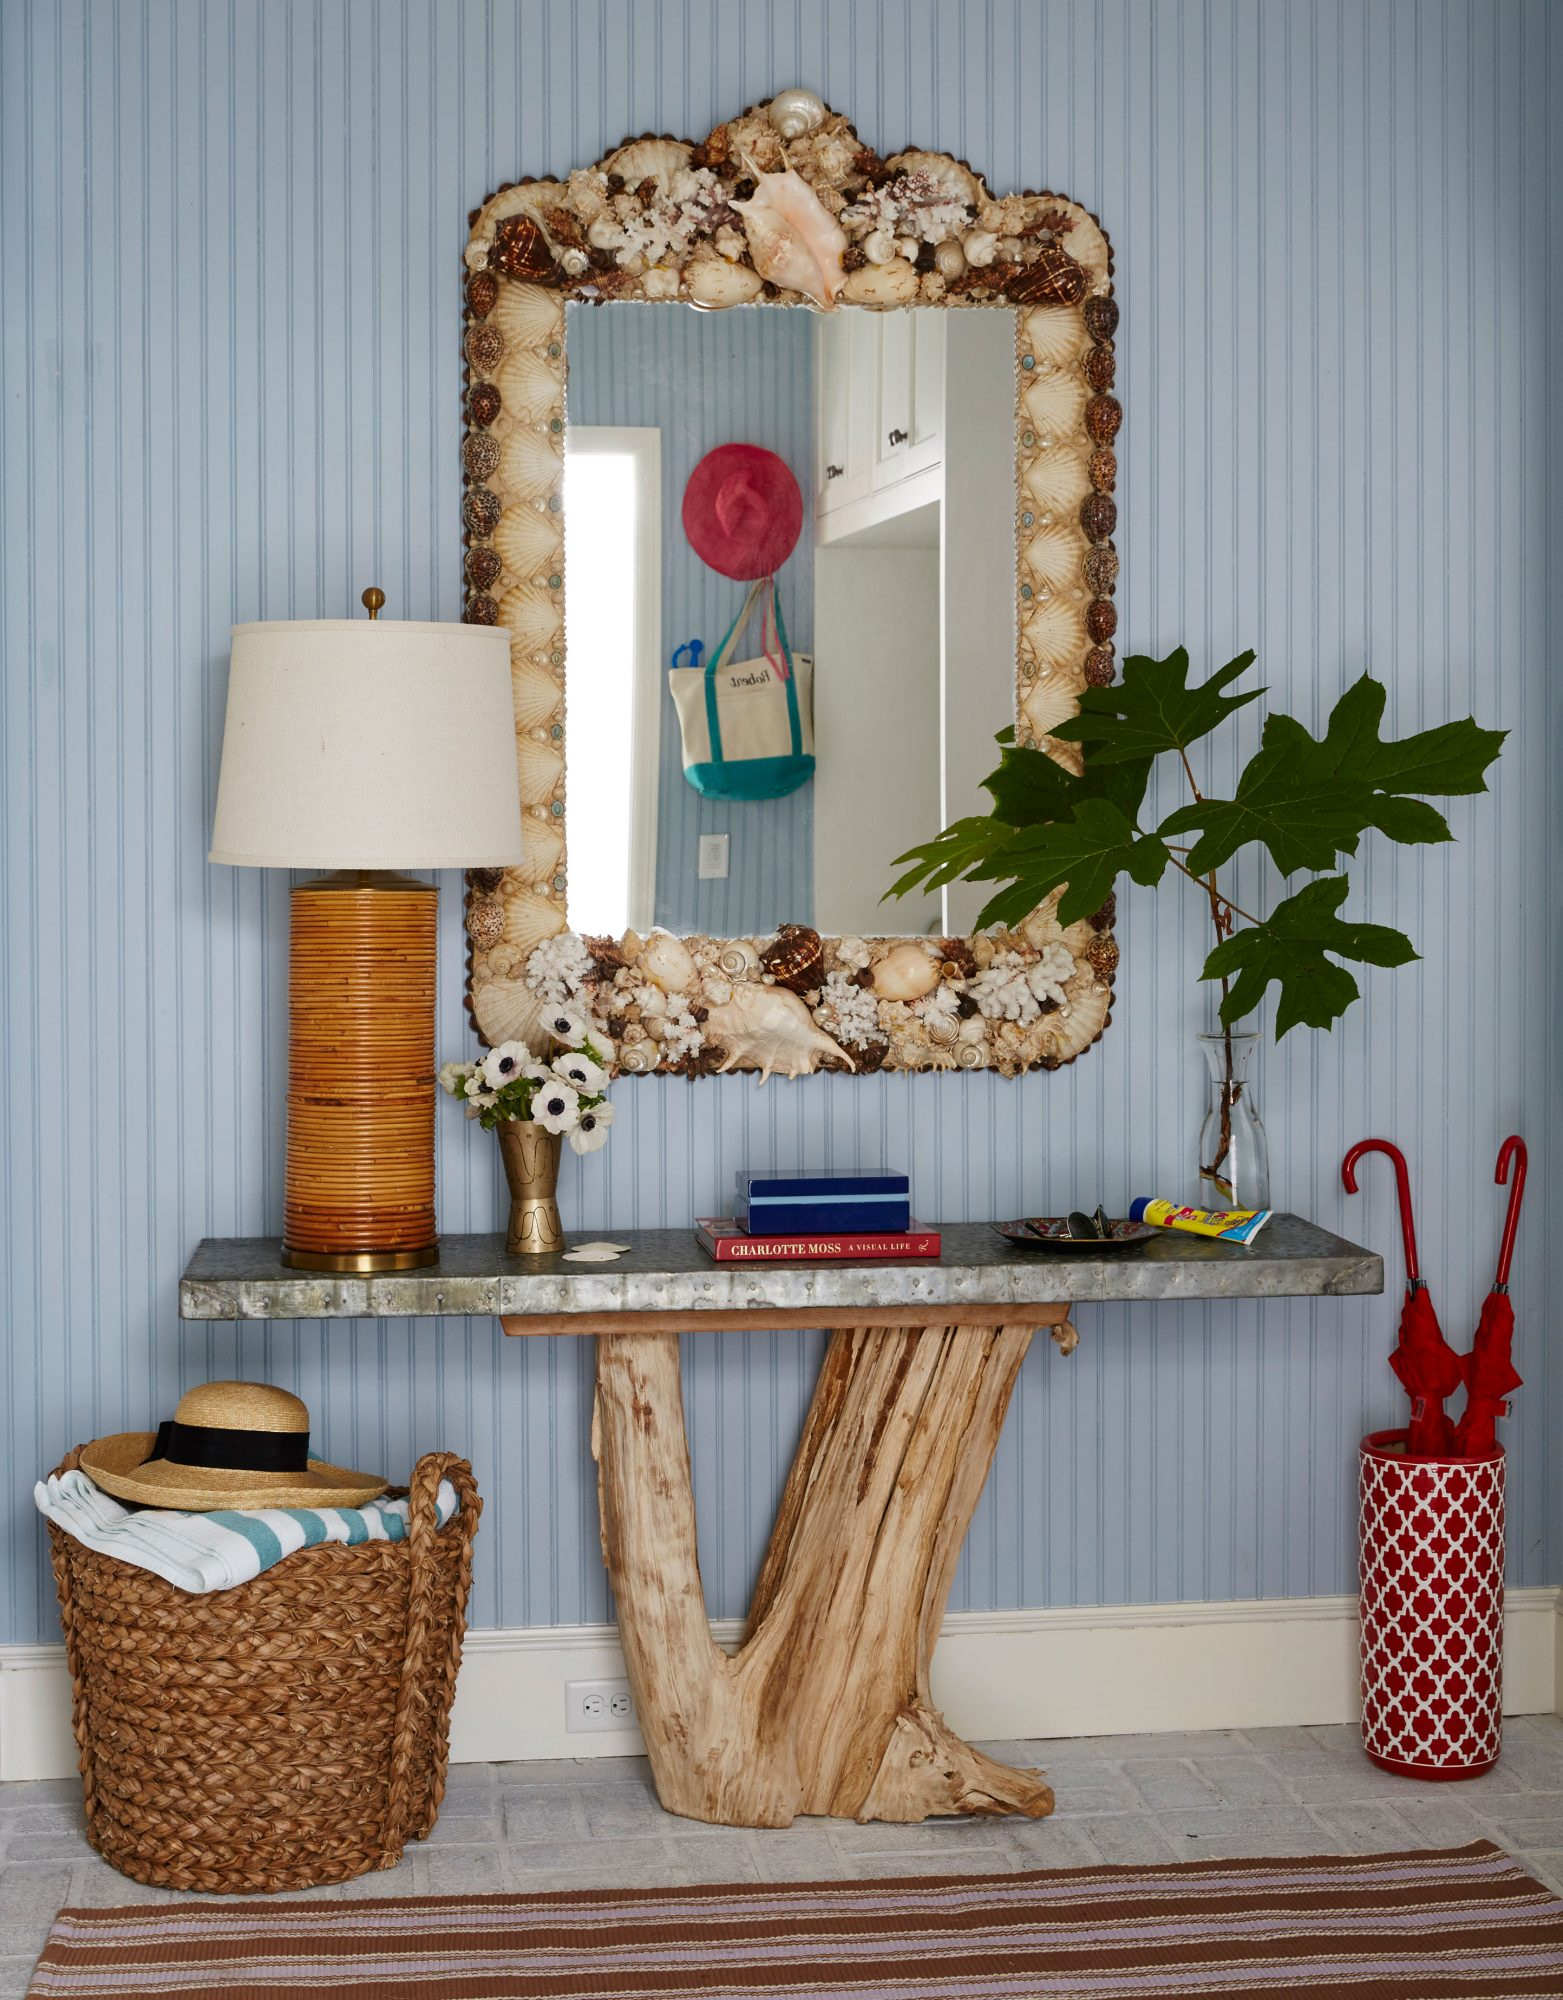 Get the Blues: Nantucket Fog by Benjamin Moore                                       Wall paneling painted a muted gray-blue grounds this Sea Island, Georgia, mudroom in a laid-back, kick-off-your-shoes feel. The soft hue also offers a subtle backdrop for the room's eye-catching organic pieces, like the vintage shell-encrusted mirror and the driftwood-inspired console.